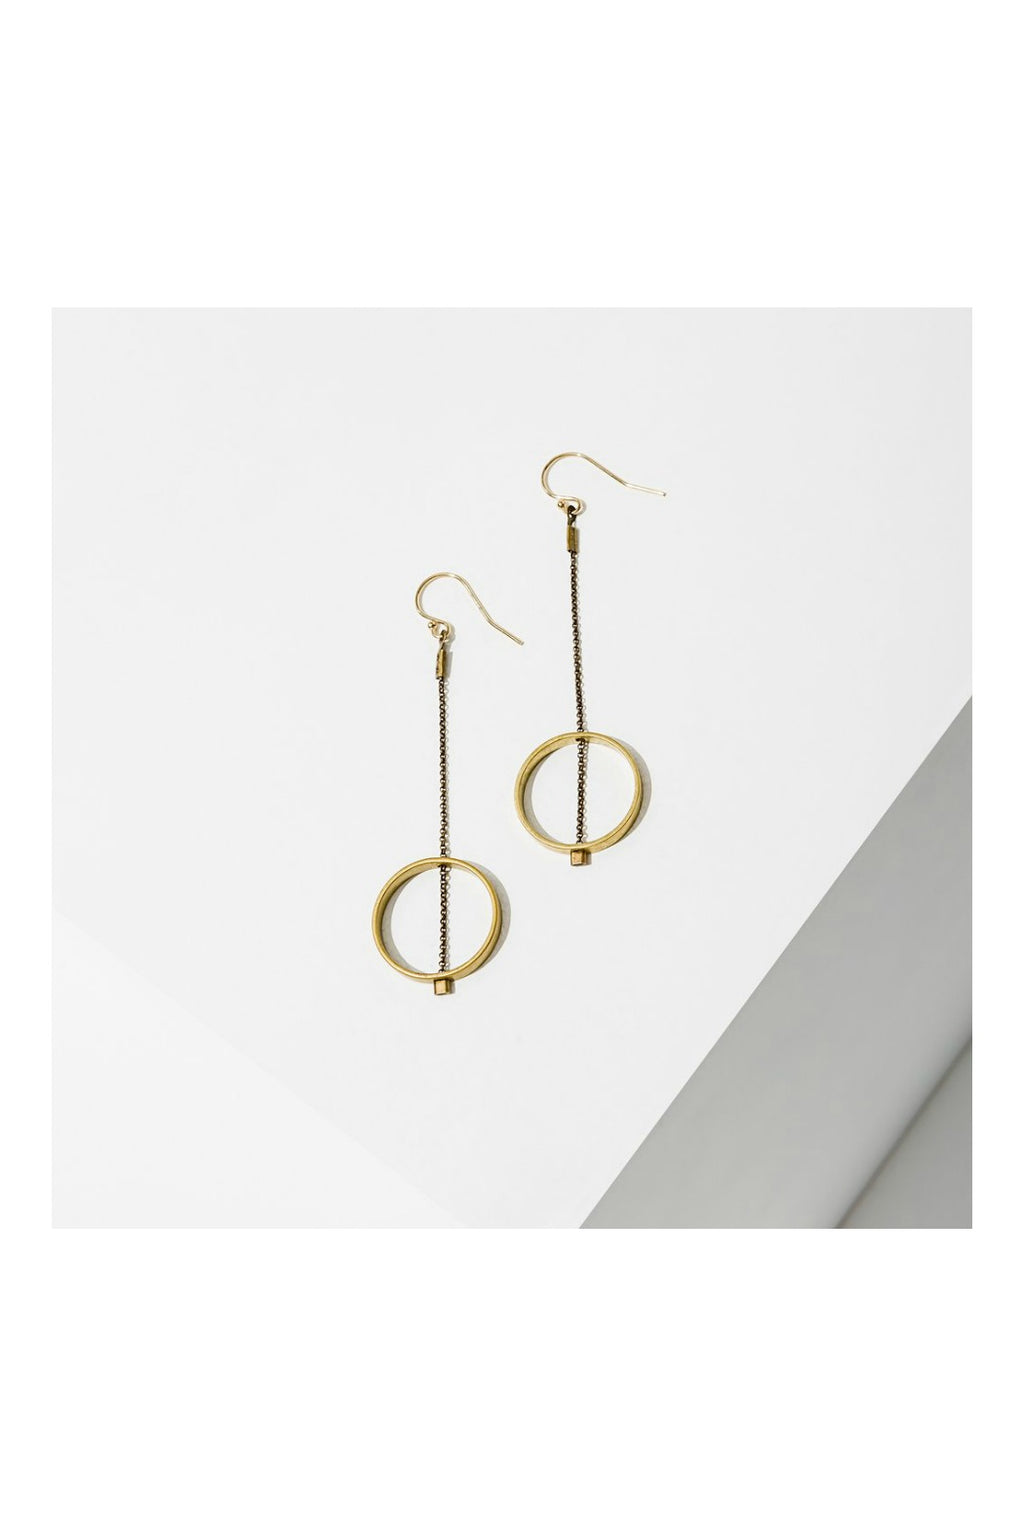 Larissa Loden Horizon Circle Earrings